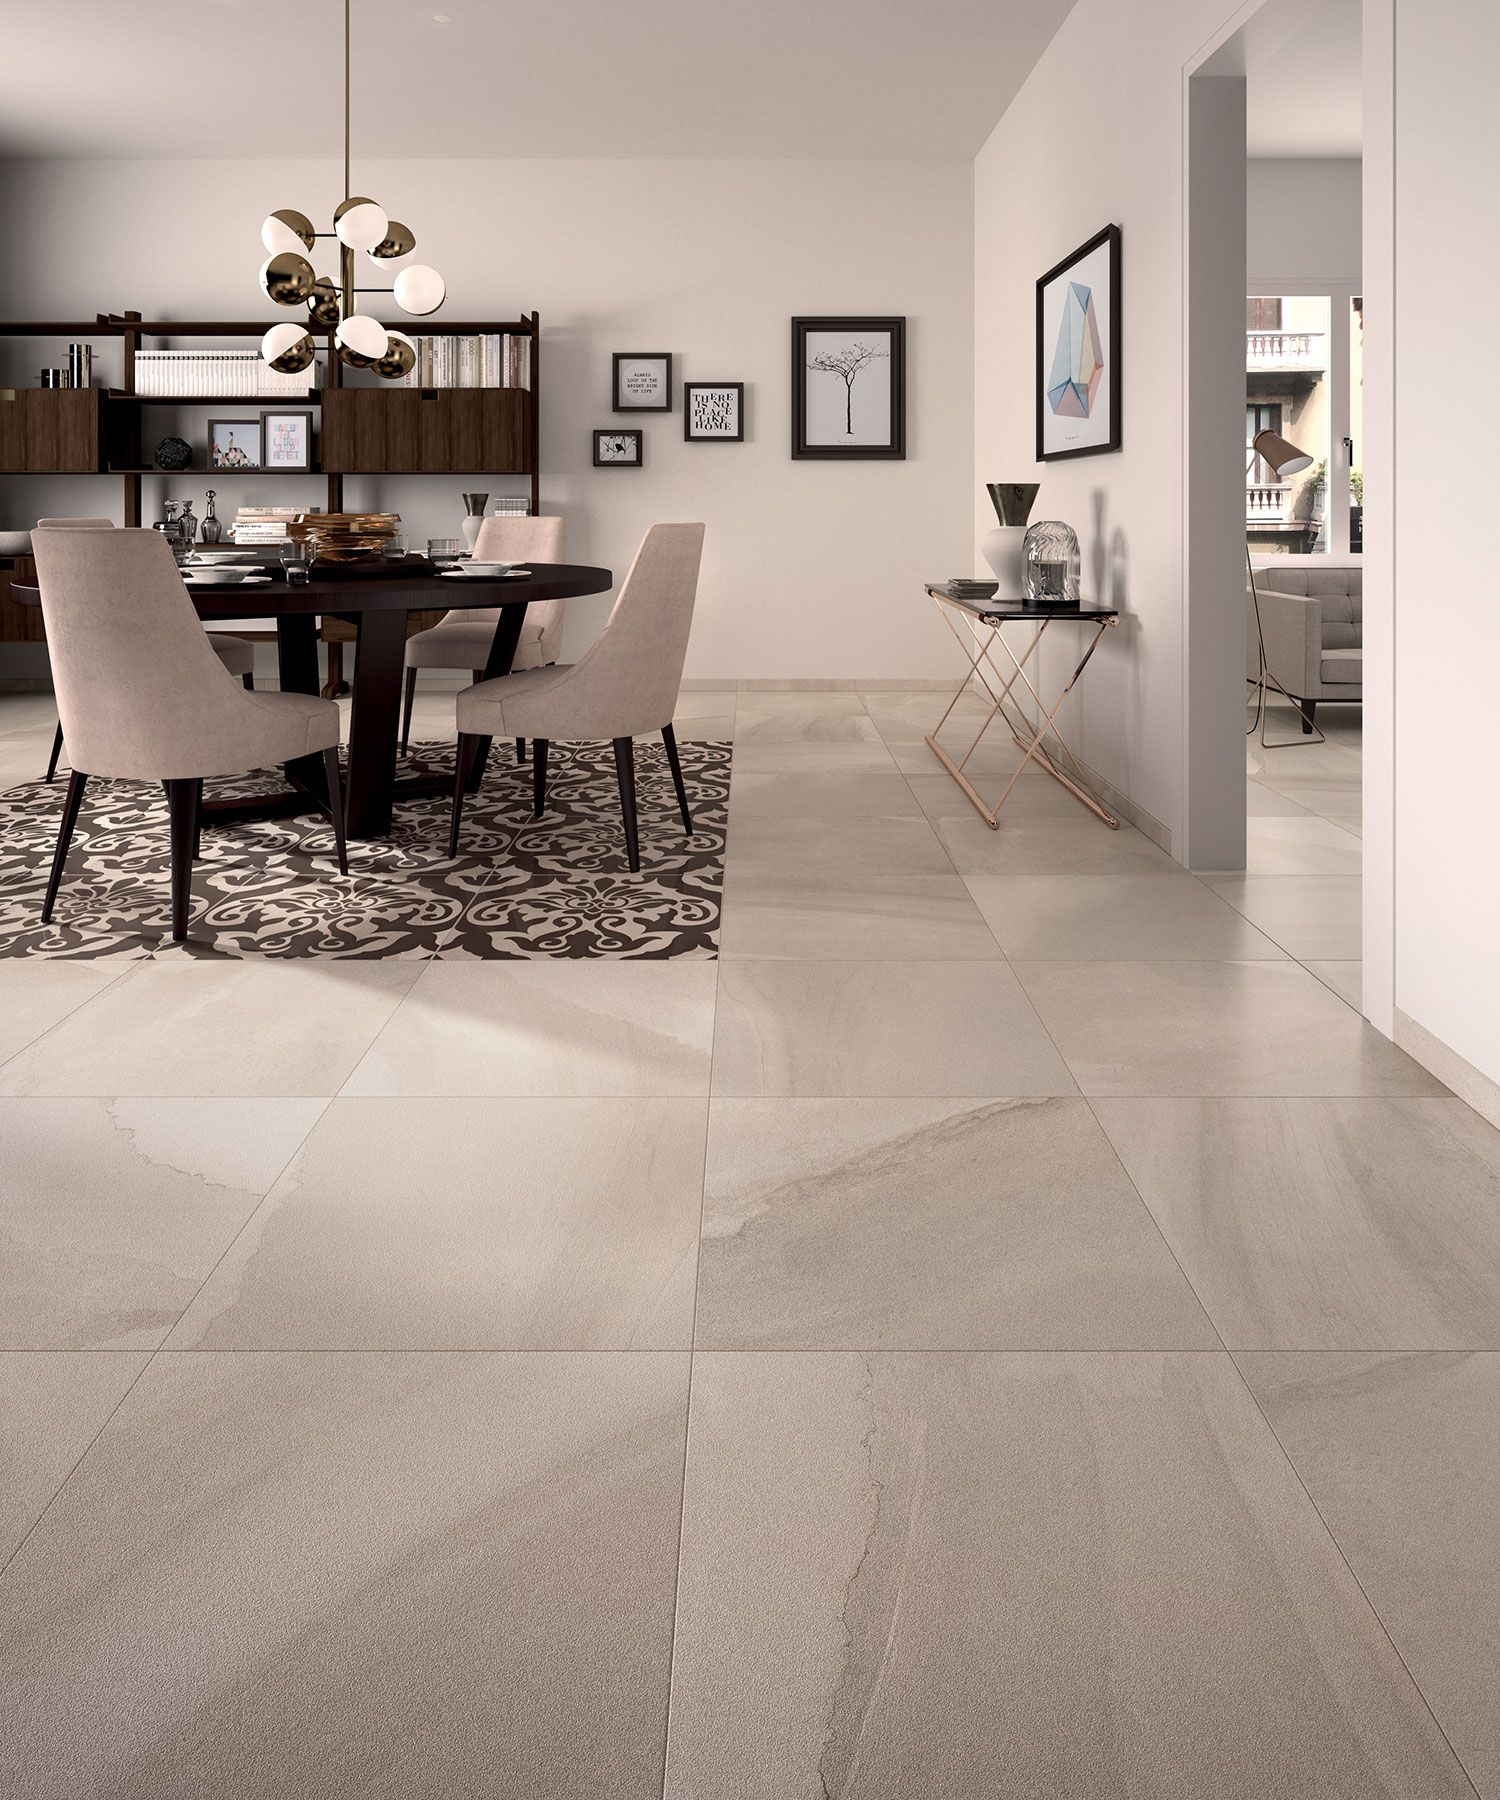 These Sophisticated Italian Porcelain Tiles Are Now 30 Off The Original Price Just 32 M2